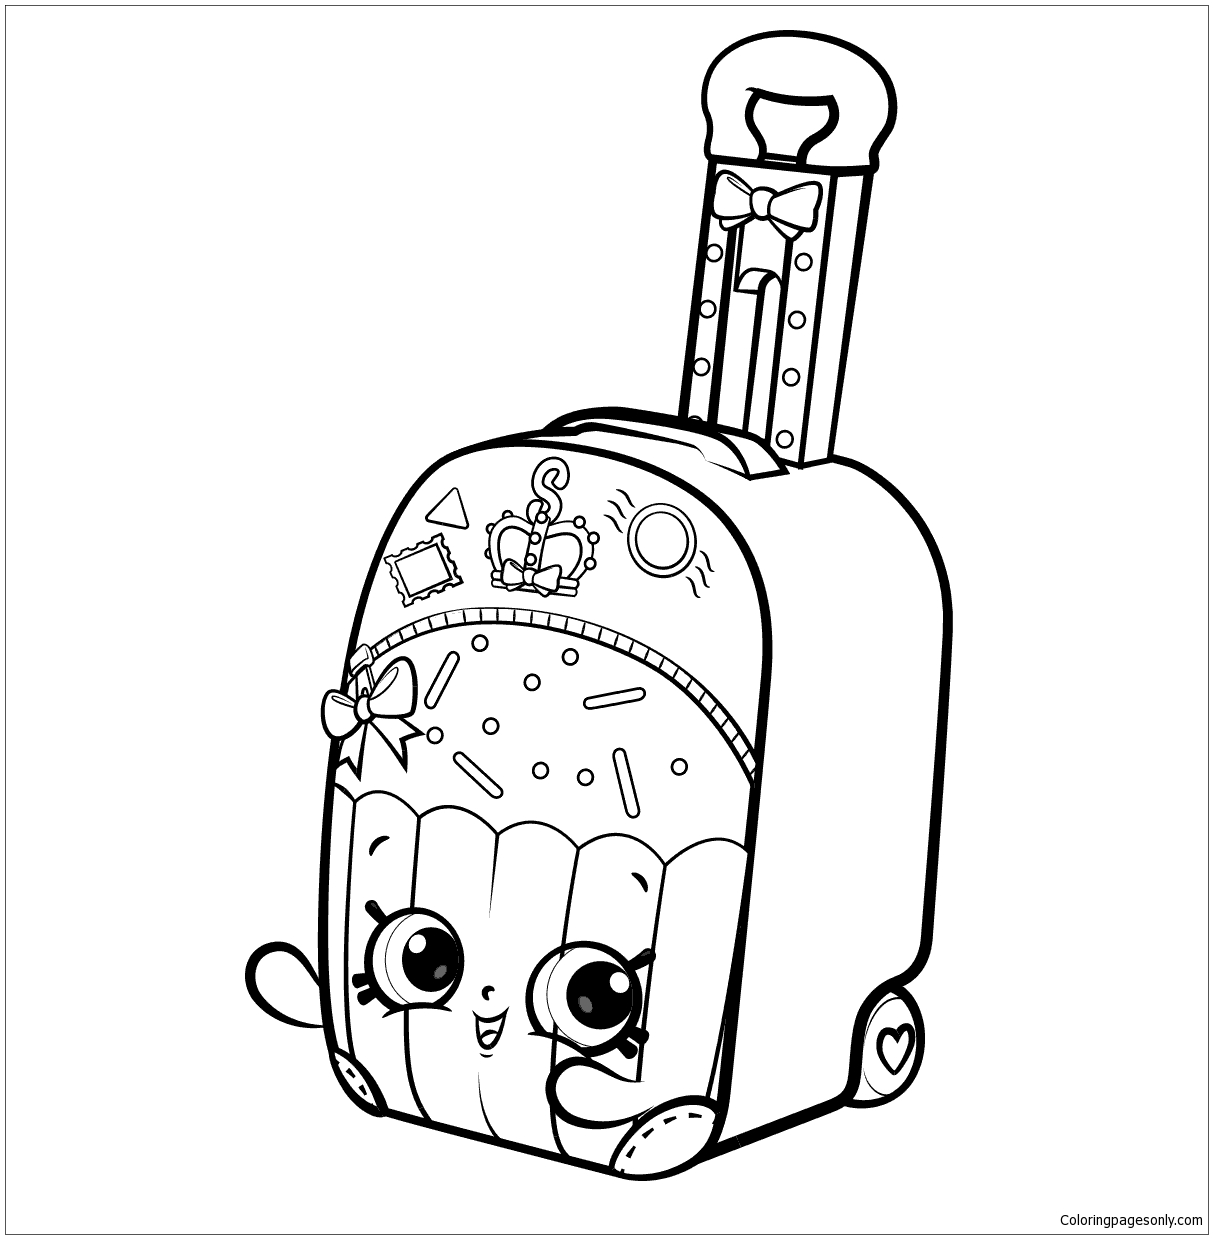 Shopkins World Vacation Coloring Page - Free Coloring Pages Online